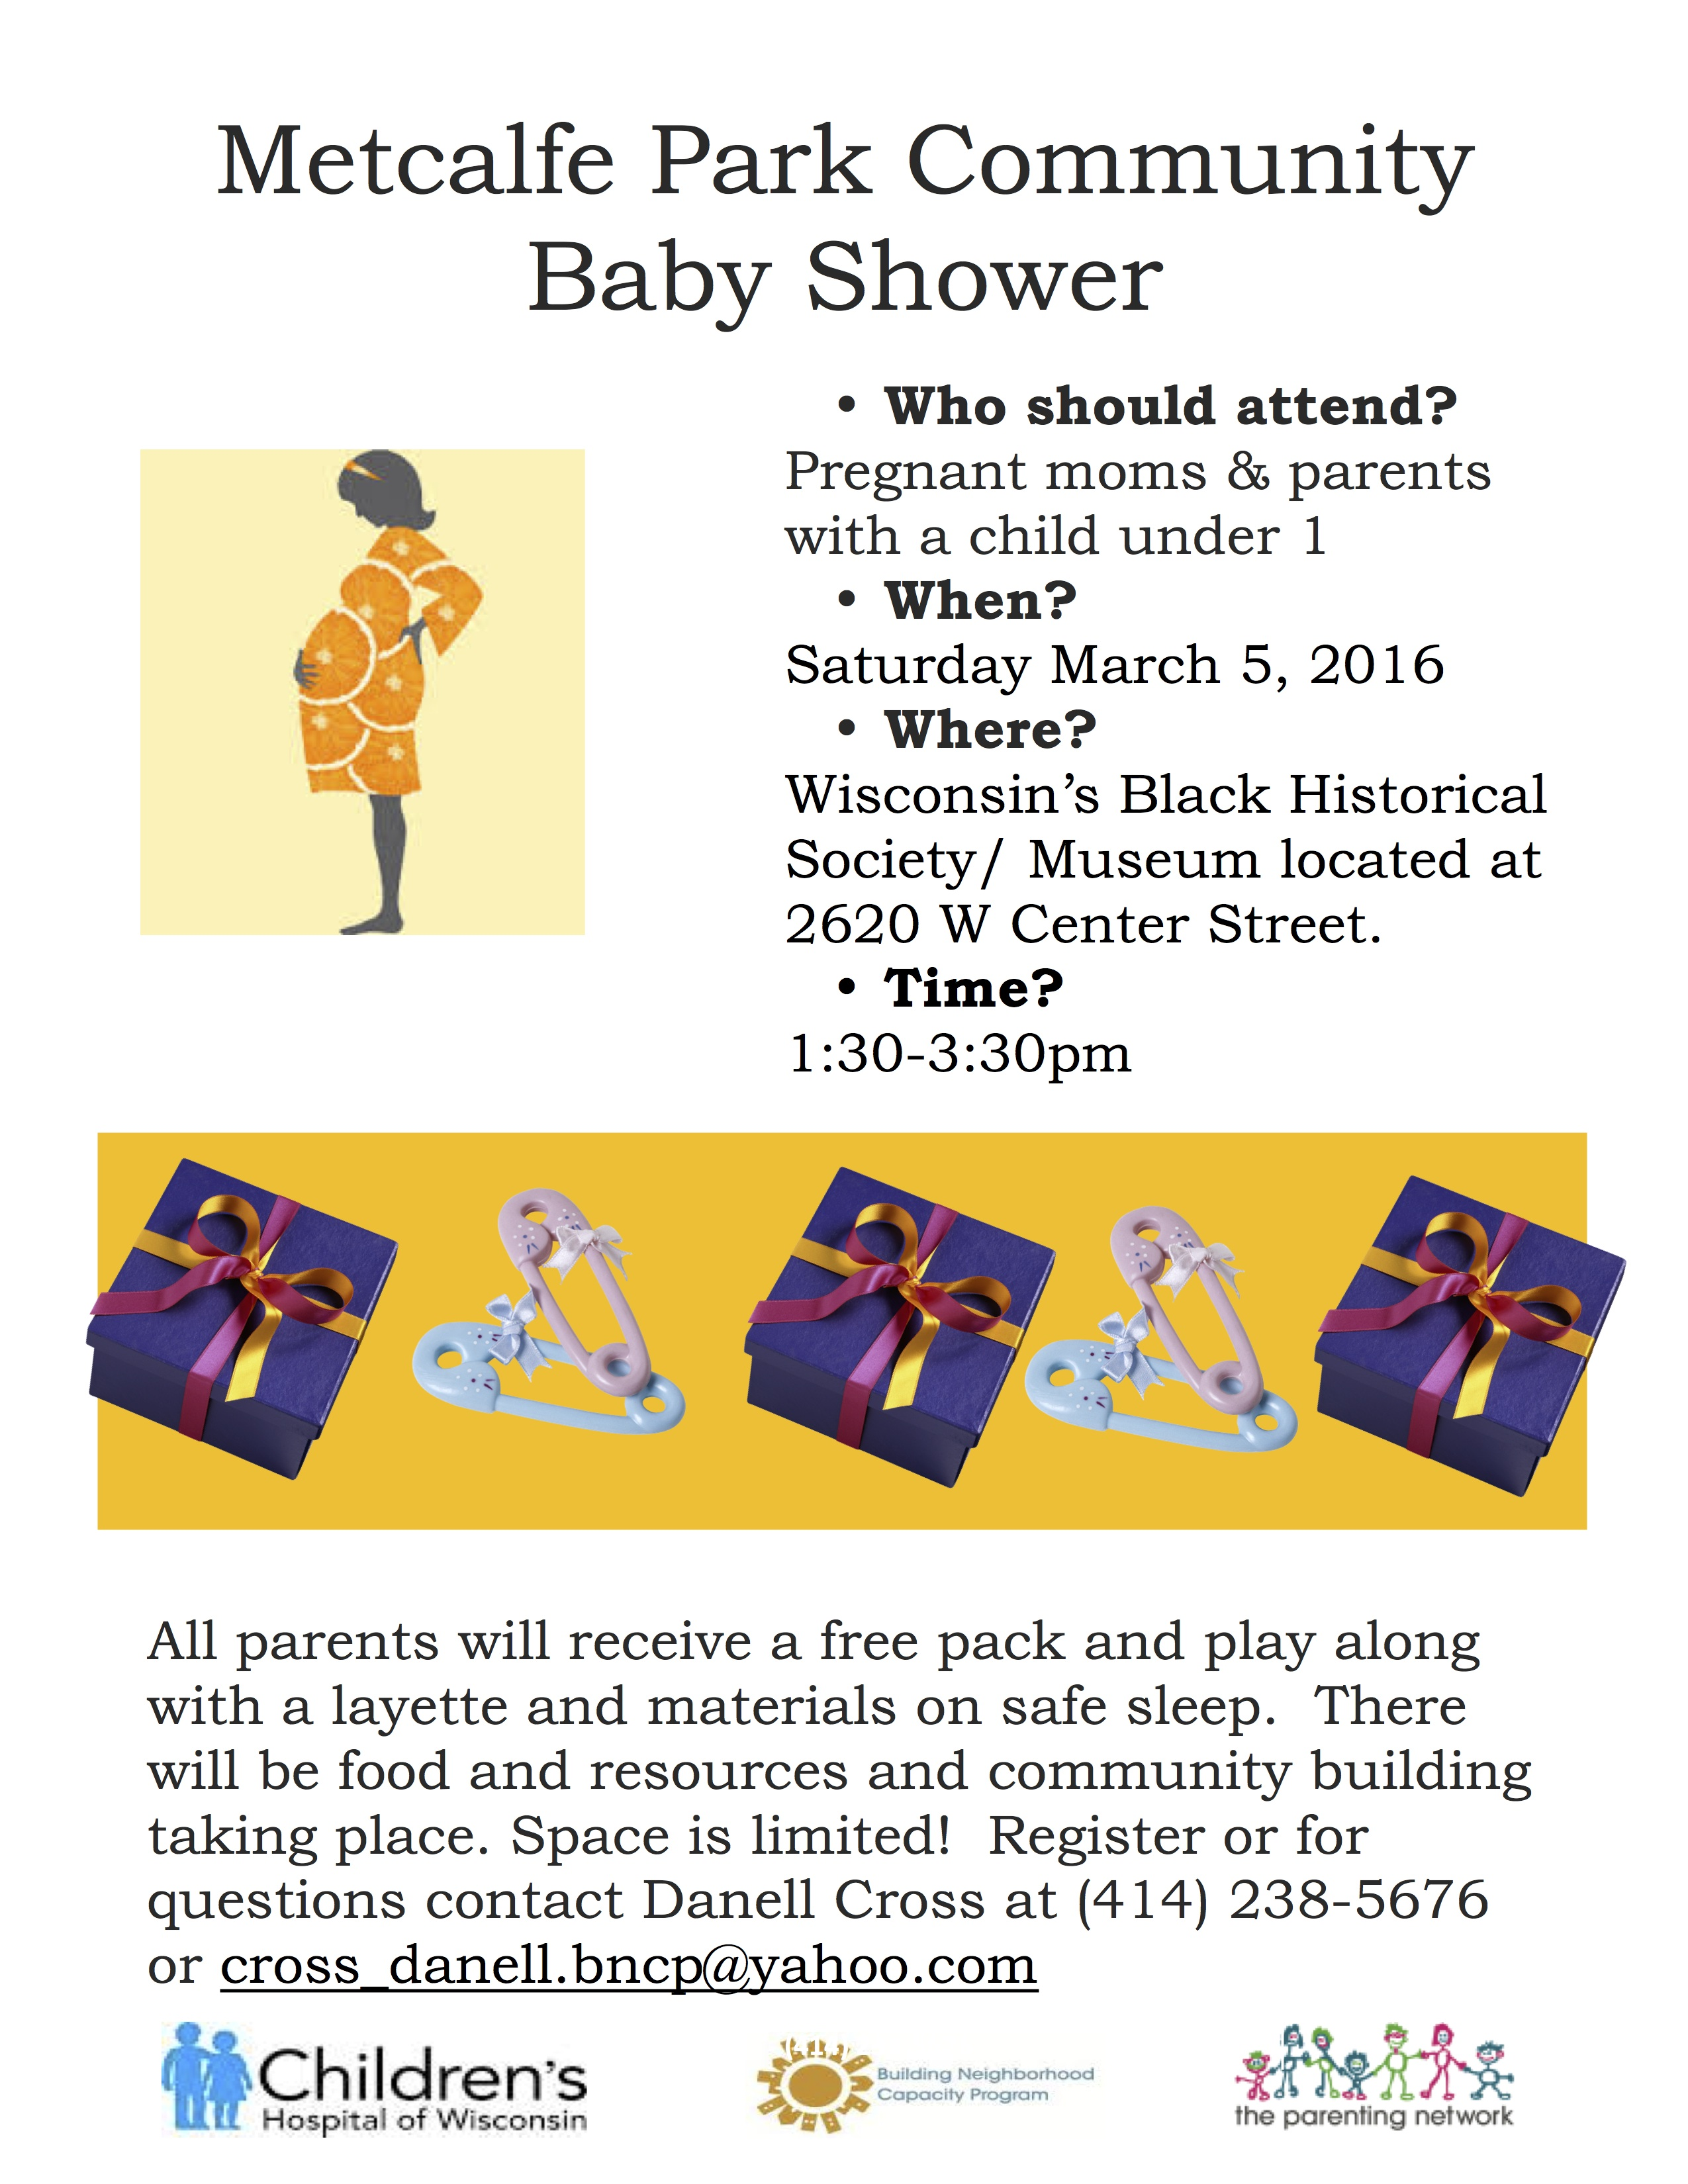 Announcing Metcalfe Park munity baby shower